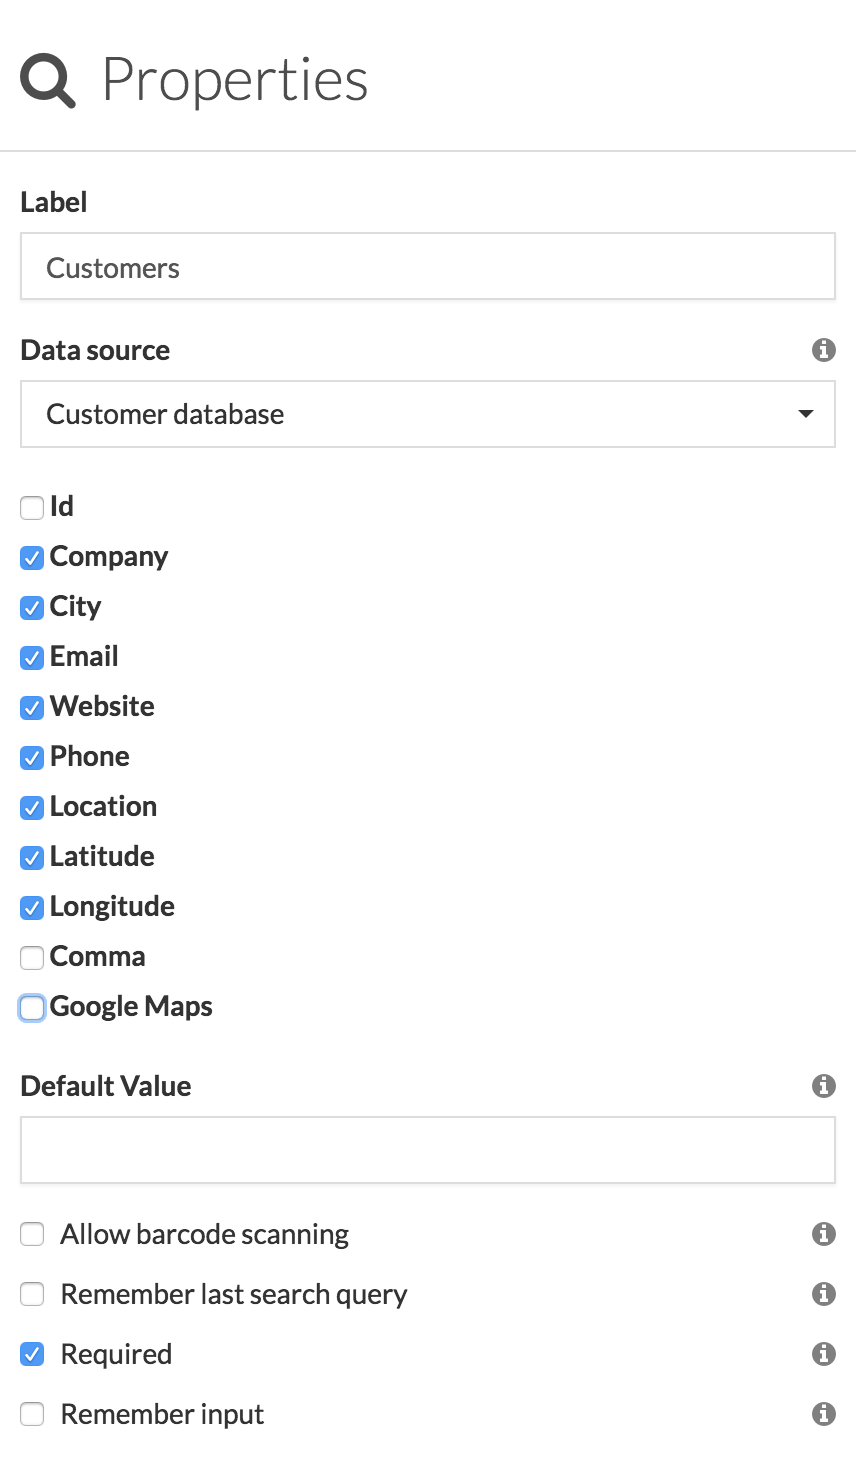 How to import Locations and open them in Google Maps